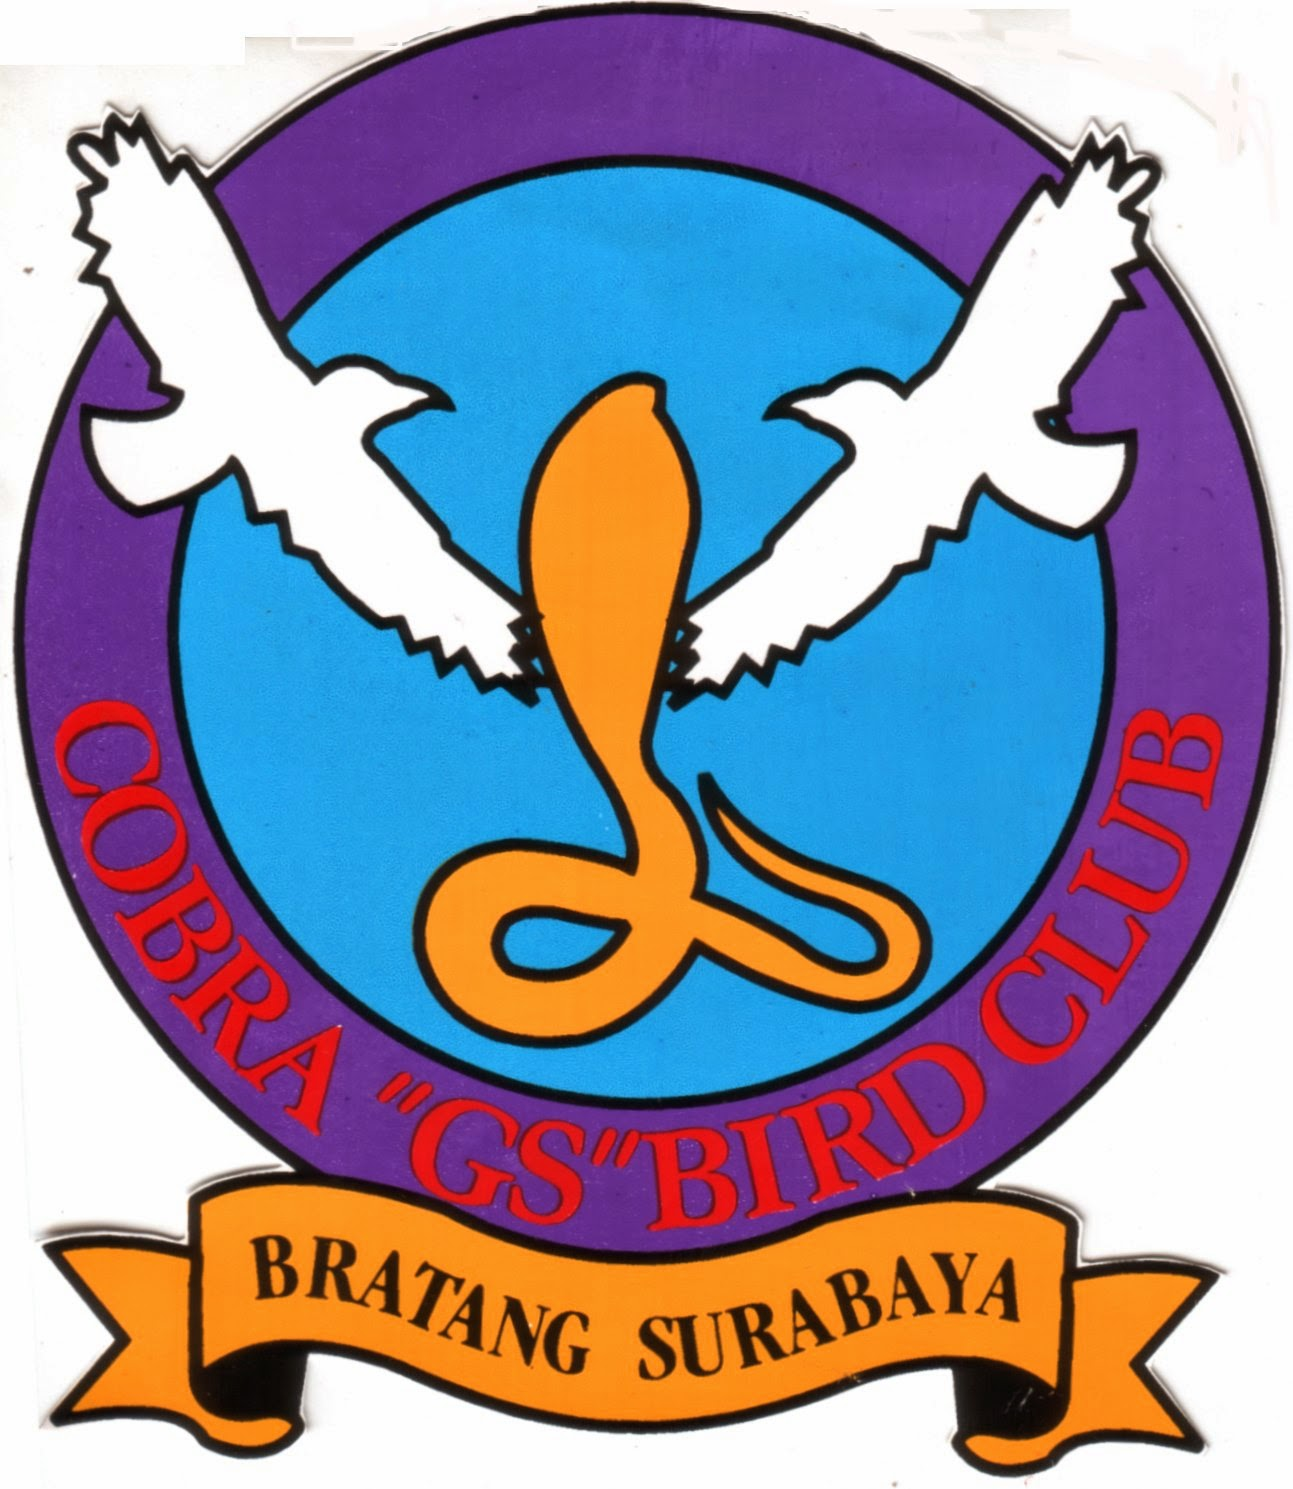 FRENDDAY LAWUTARA COBRA GS BIRD SURABAYA